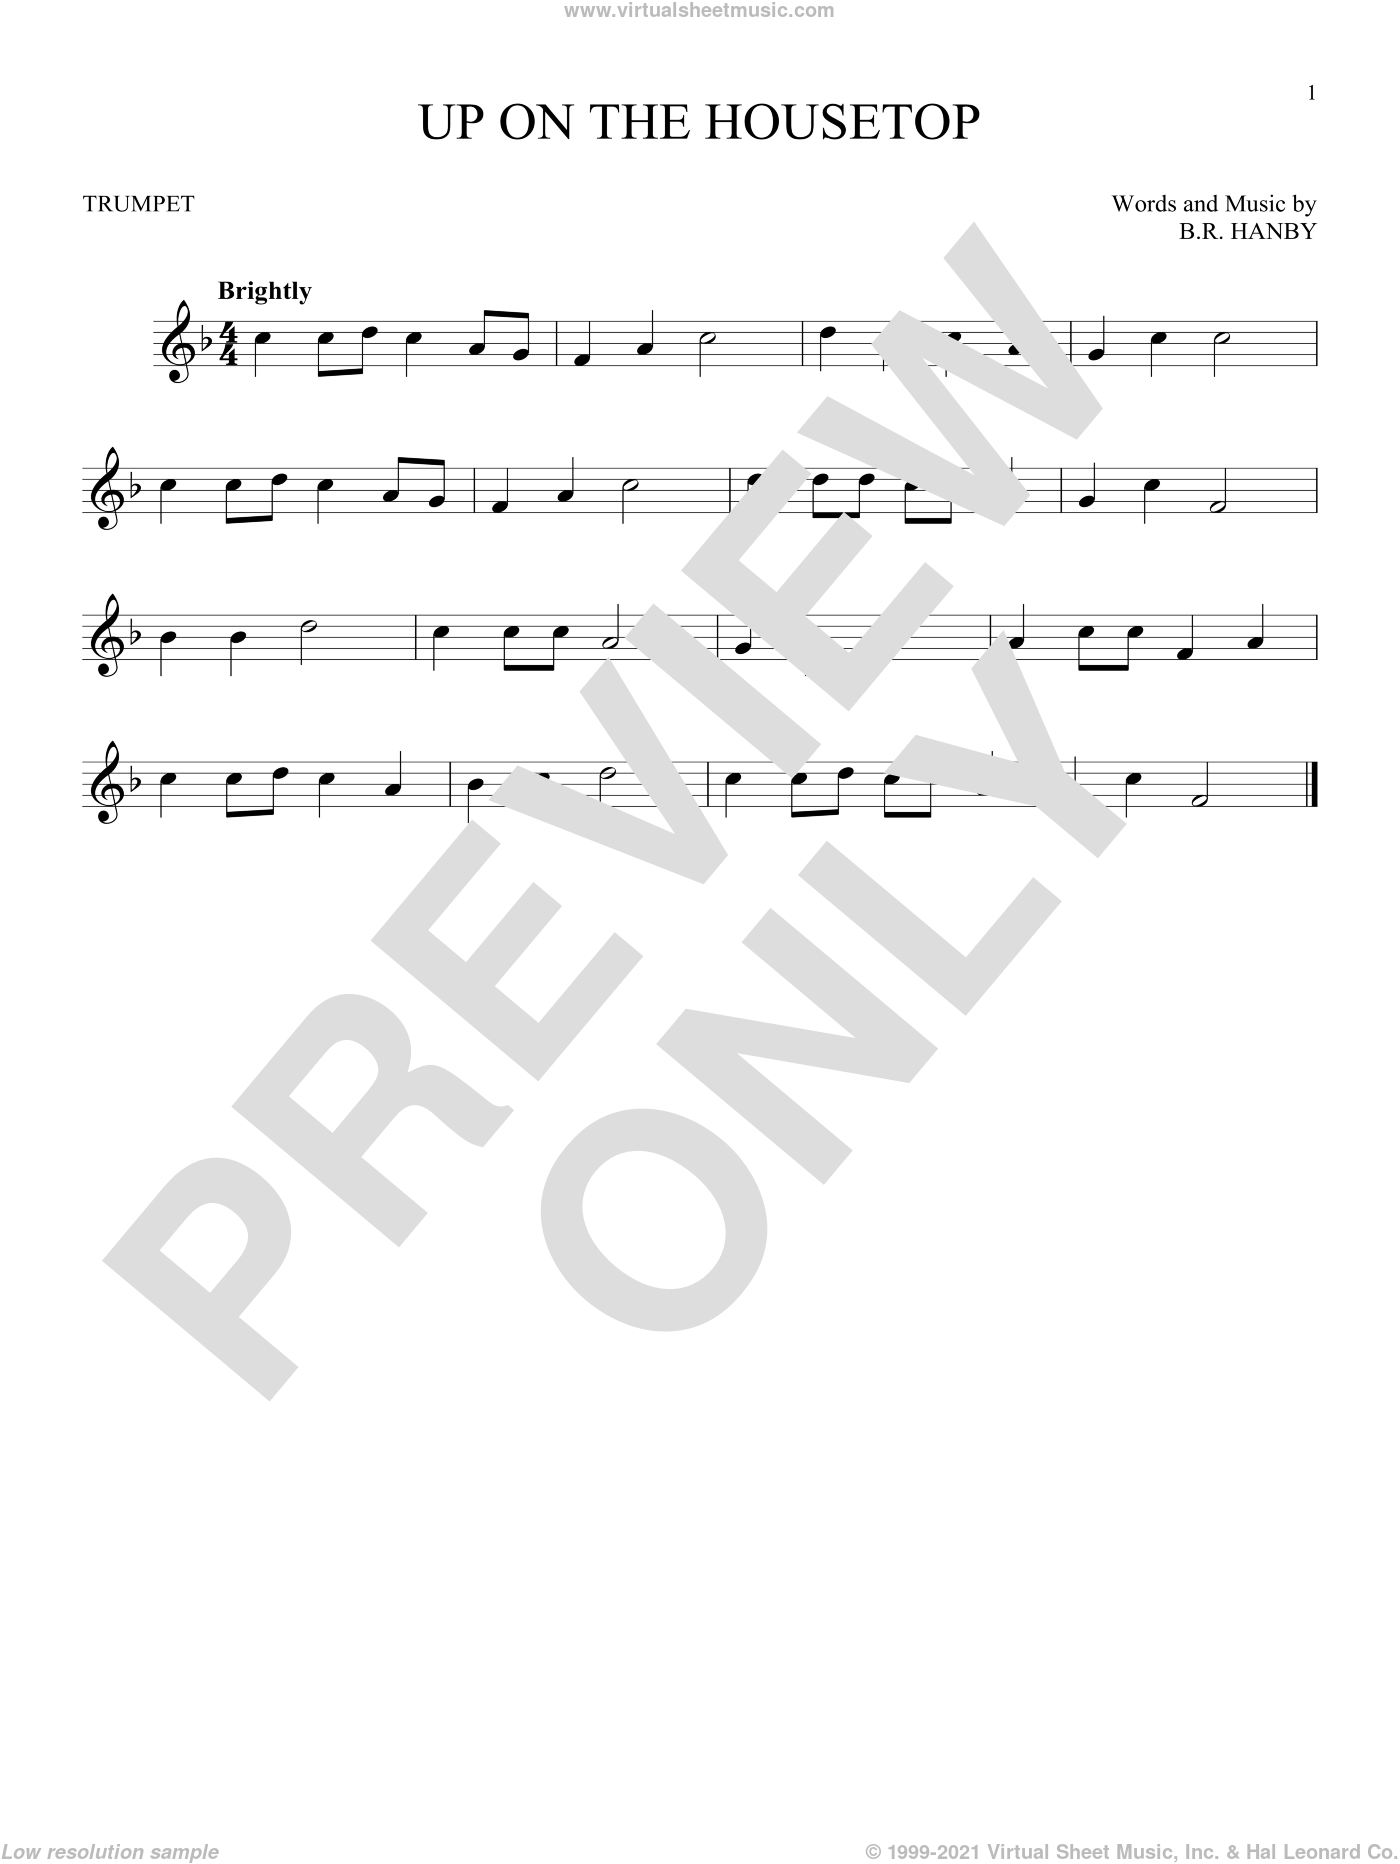 Up On The Housetop sheet music for trumpet solo by Benjamin Hanby, intermediate